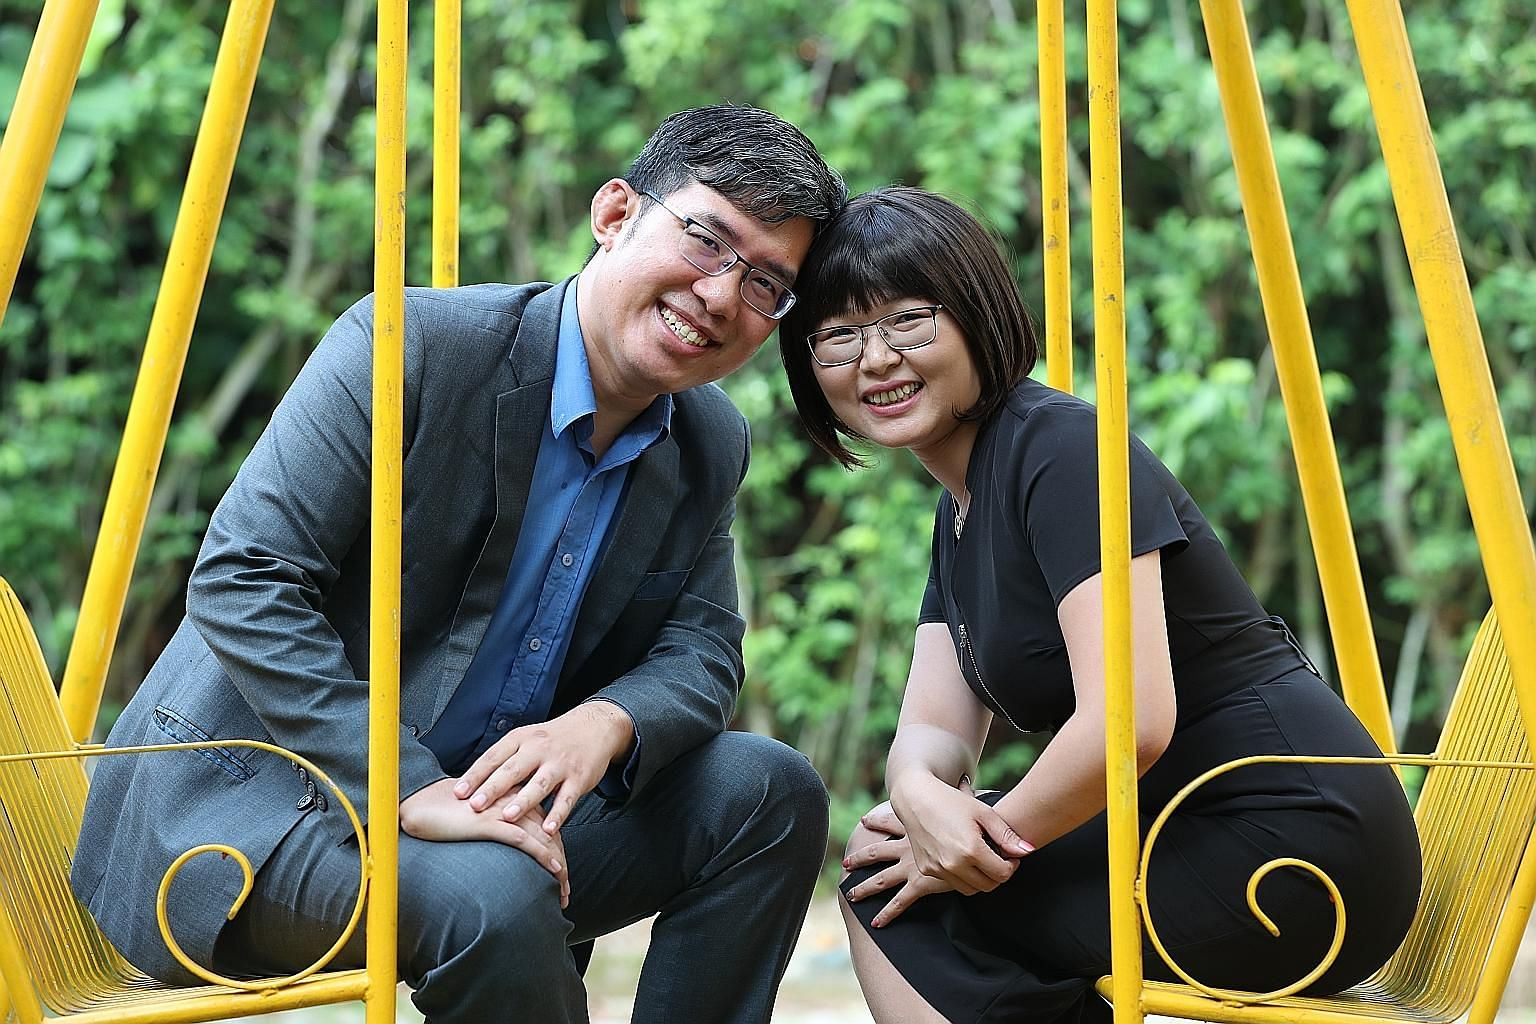 Mr Kelly Choo and Ms Jessie Tong first met at the National University of Singapore in 2004. ST PHOTO: TIMOTHY DAVID